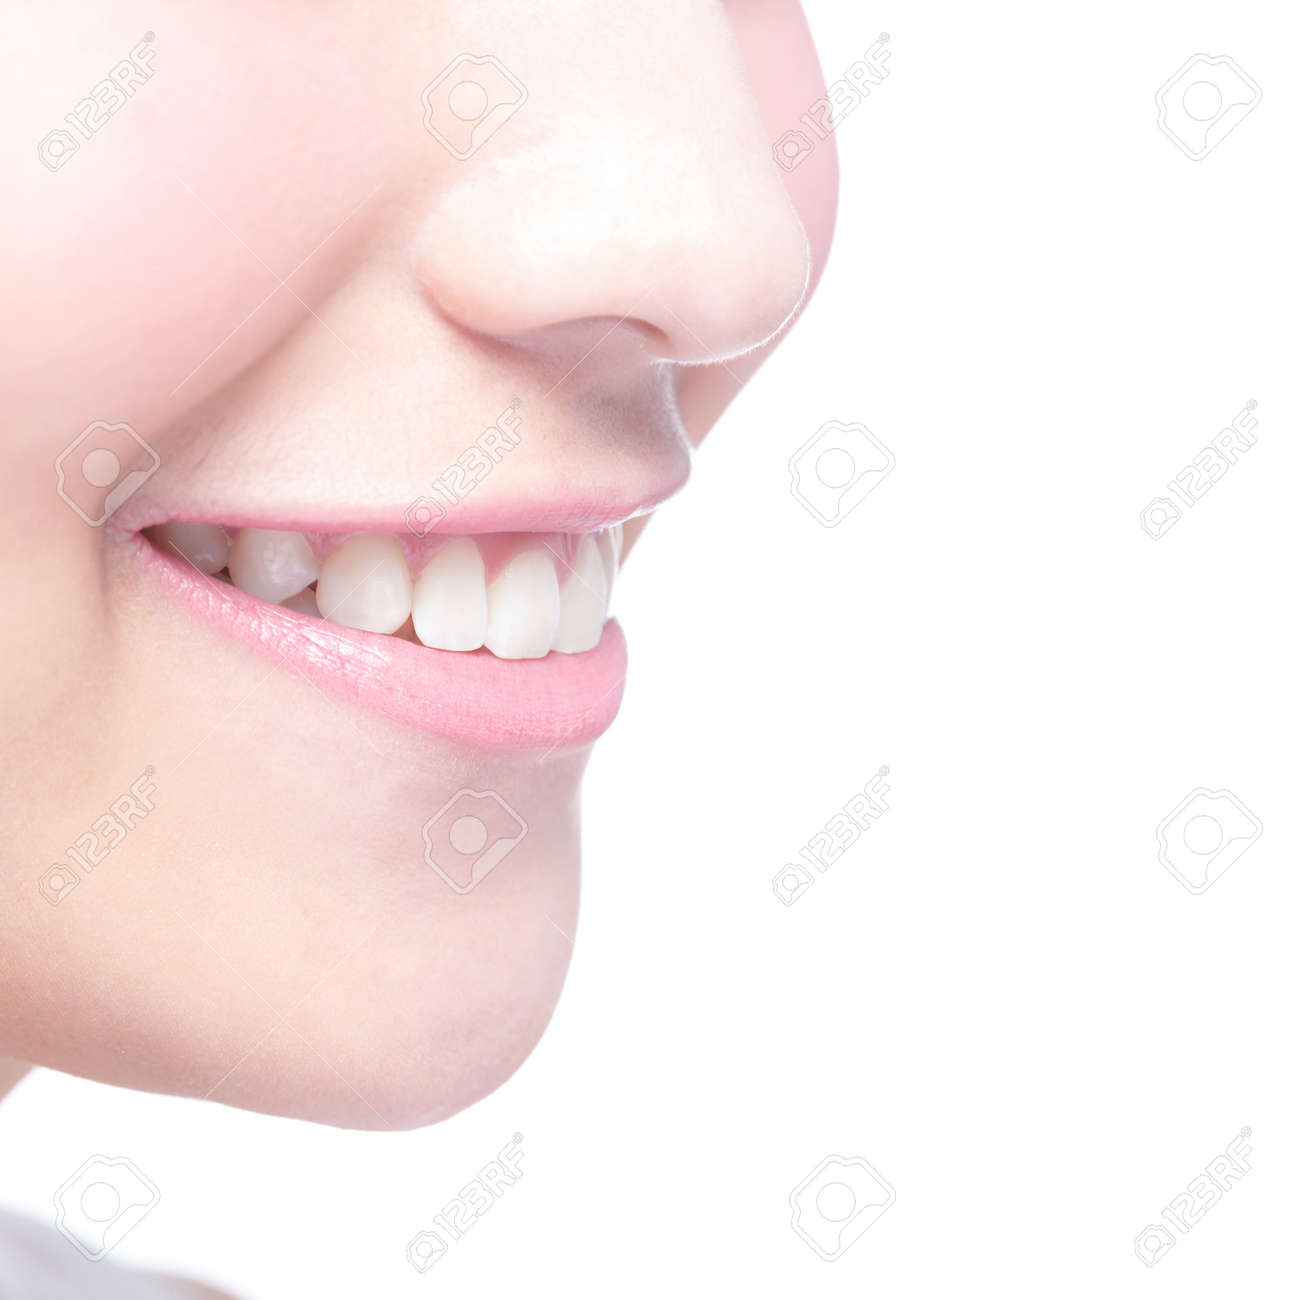 Beautiful young woman health teeth close up and charming smile. Isolated over white background, asian beauty - 40856167